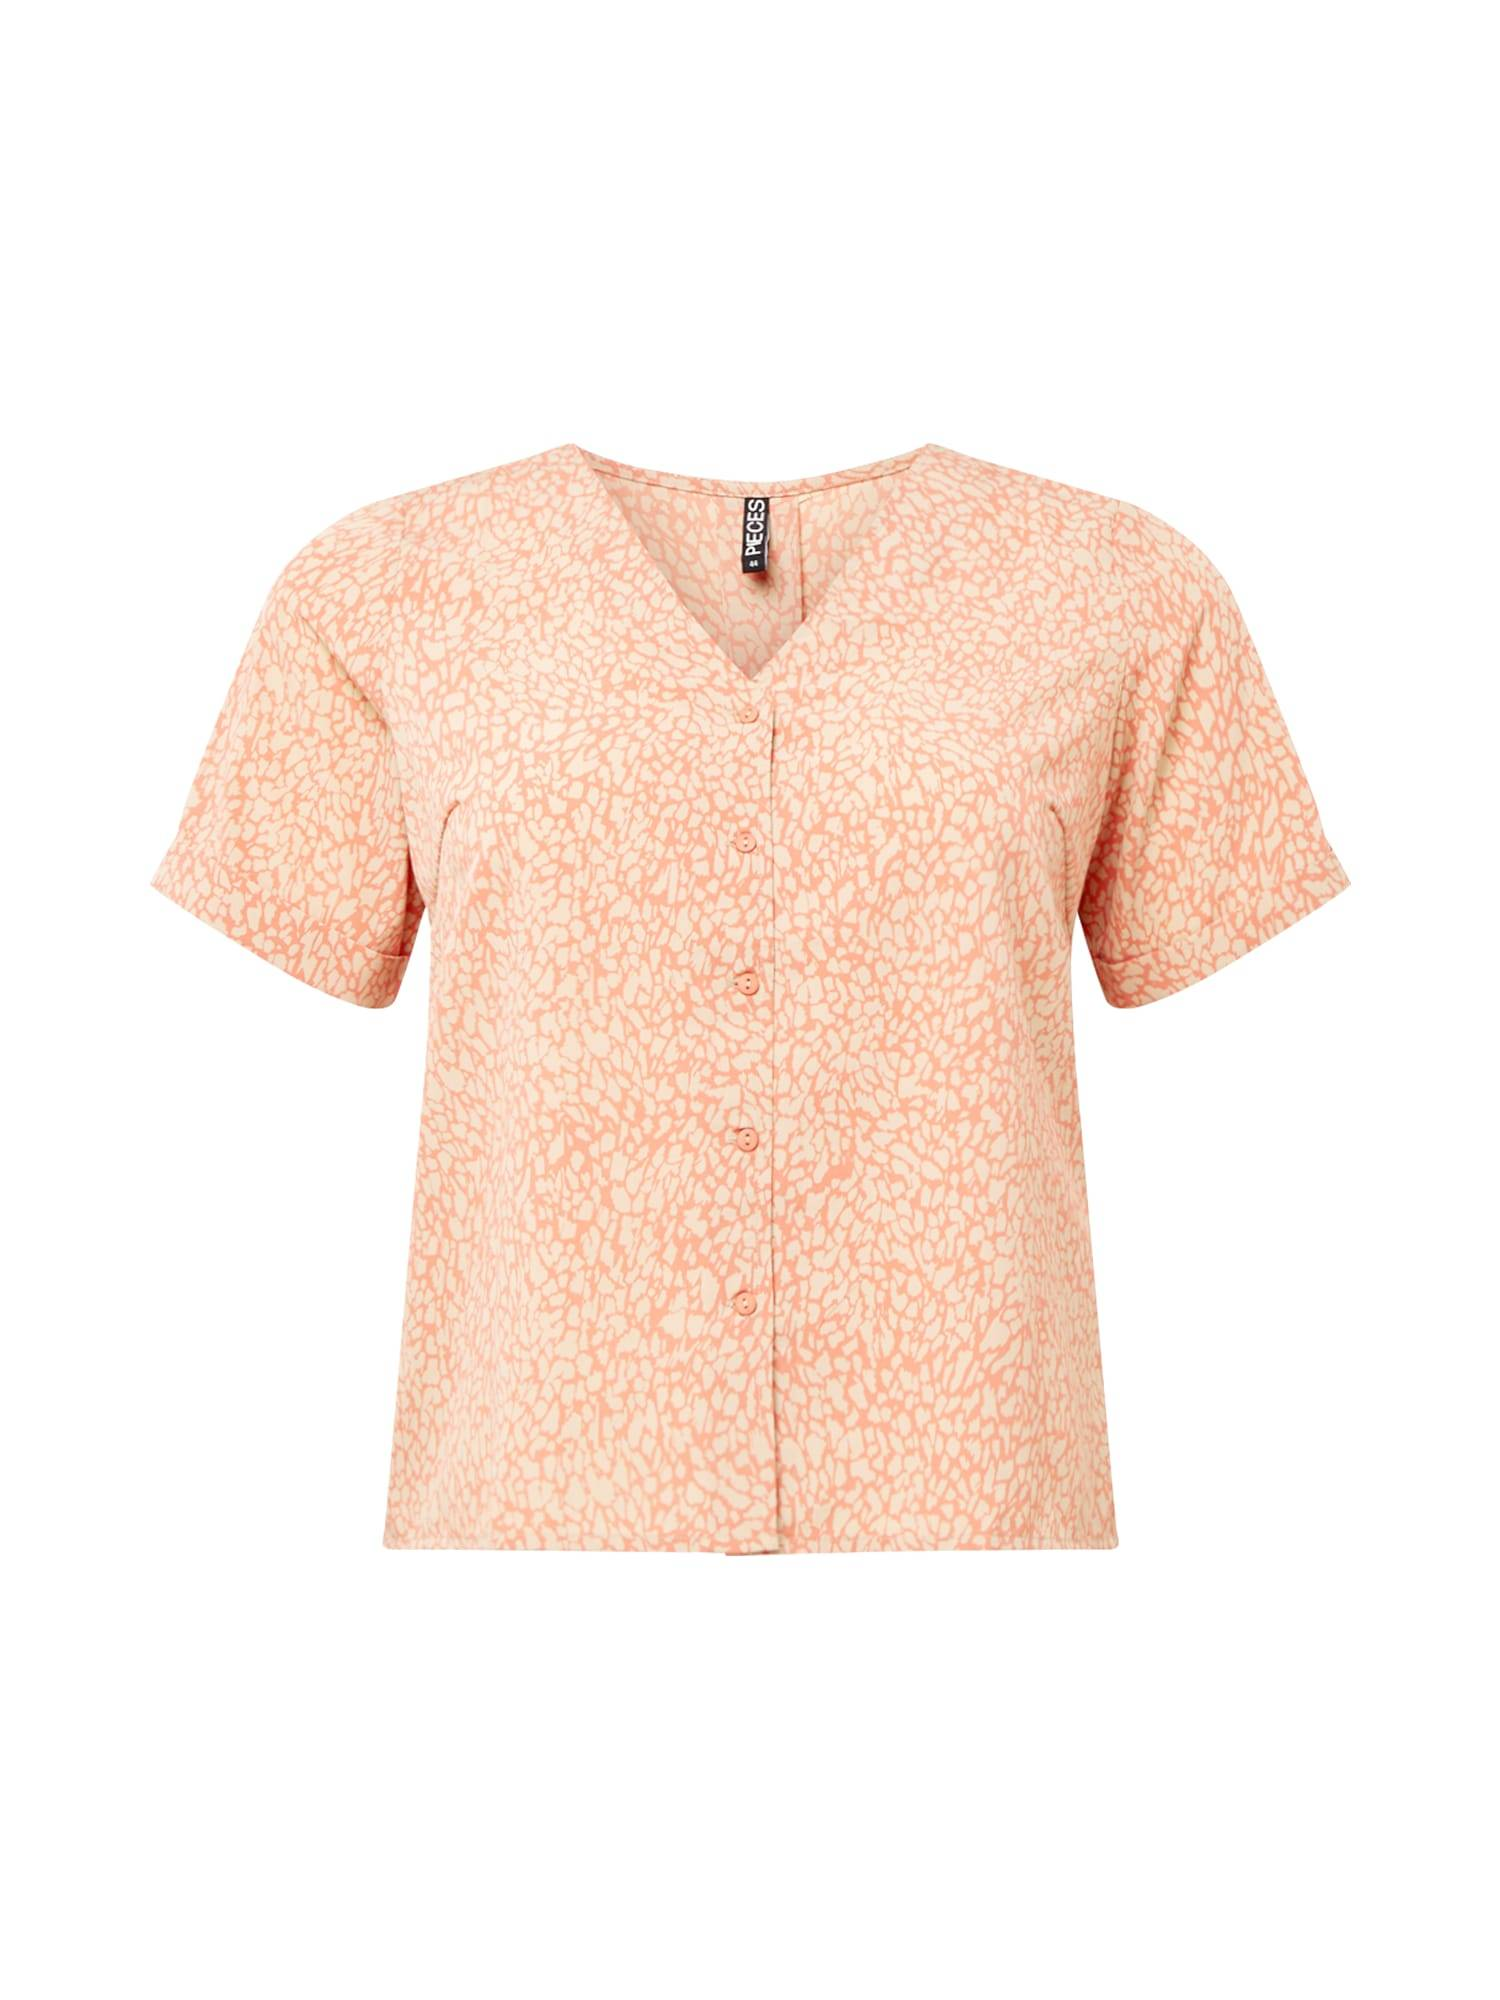 PIECES (Curve) Chemisier 'GILBERTA'  - Orange - Taille: 46 - female